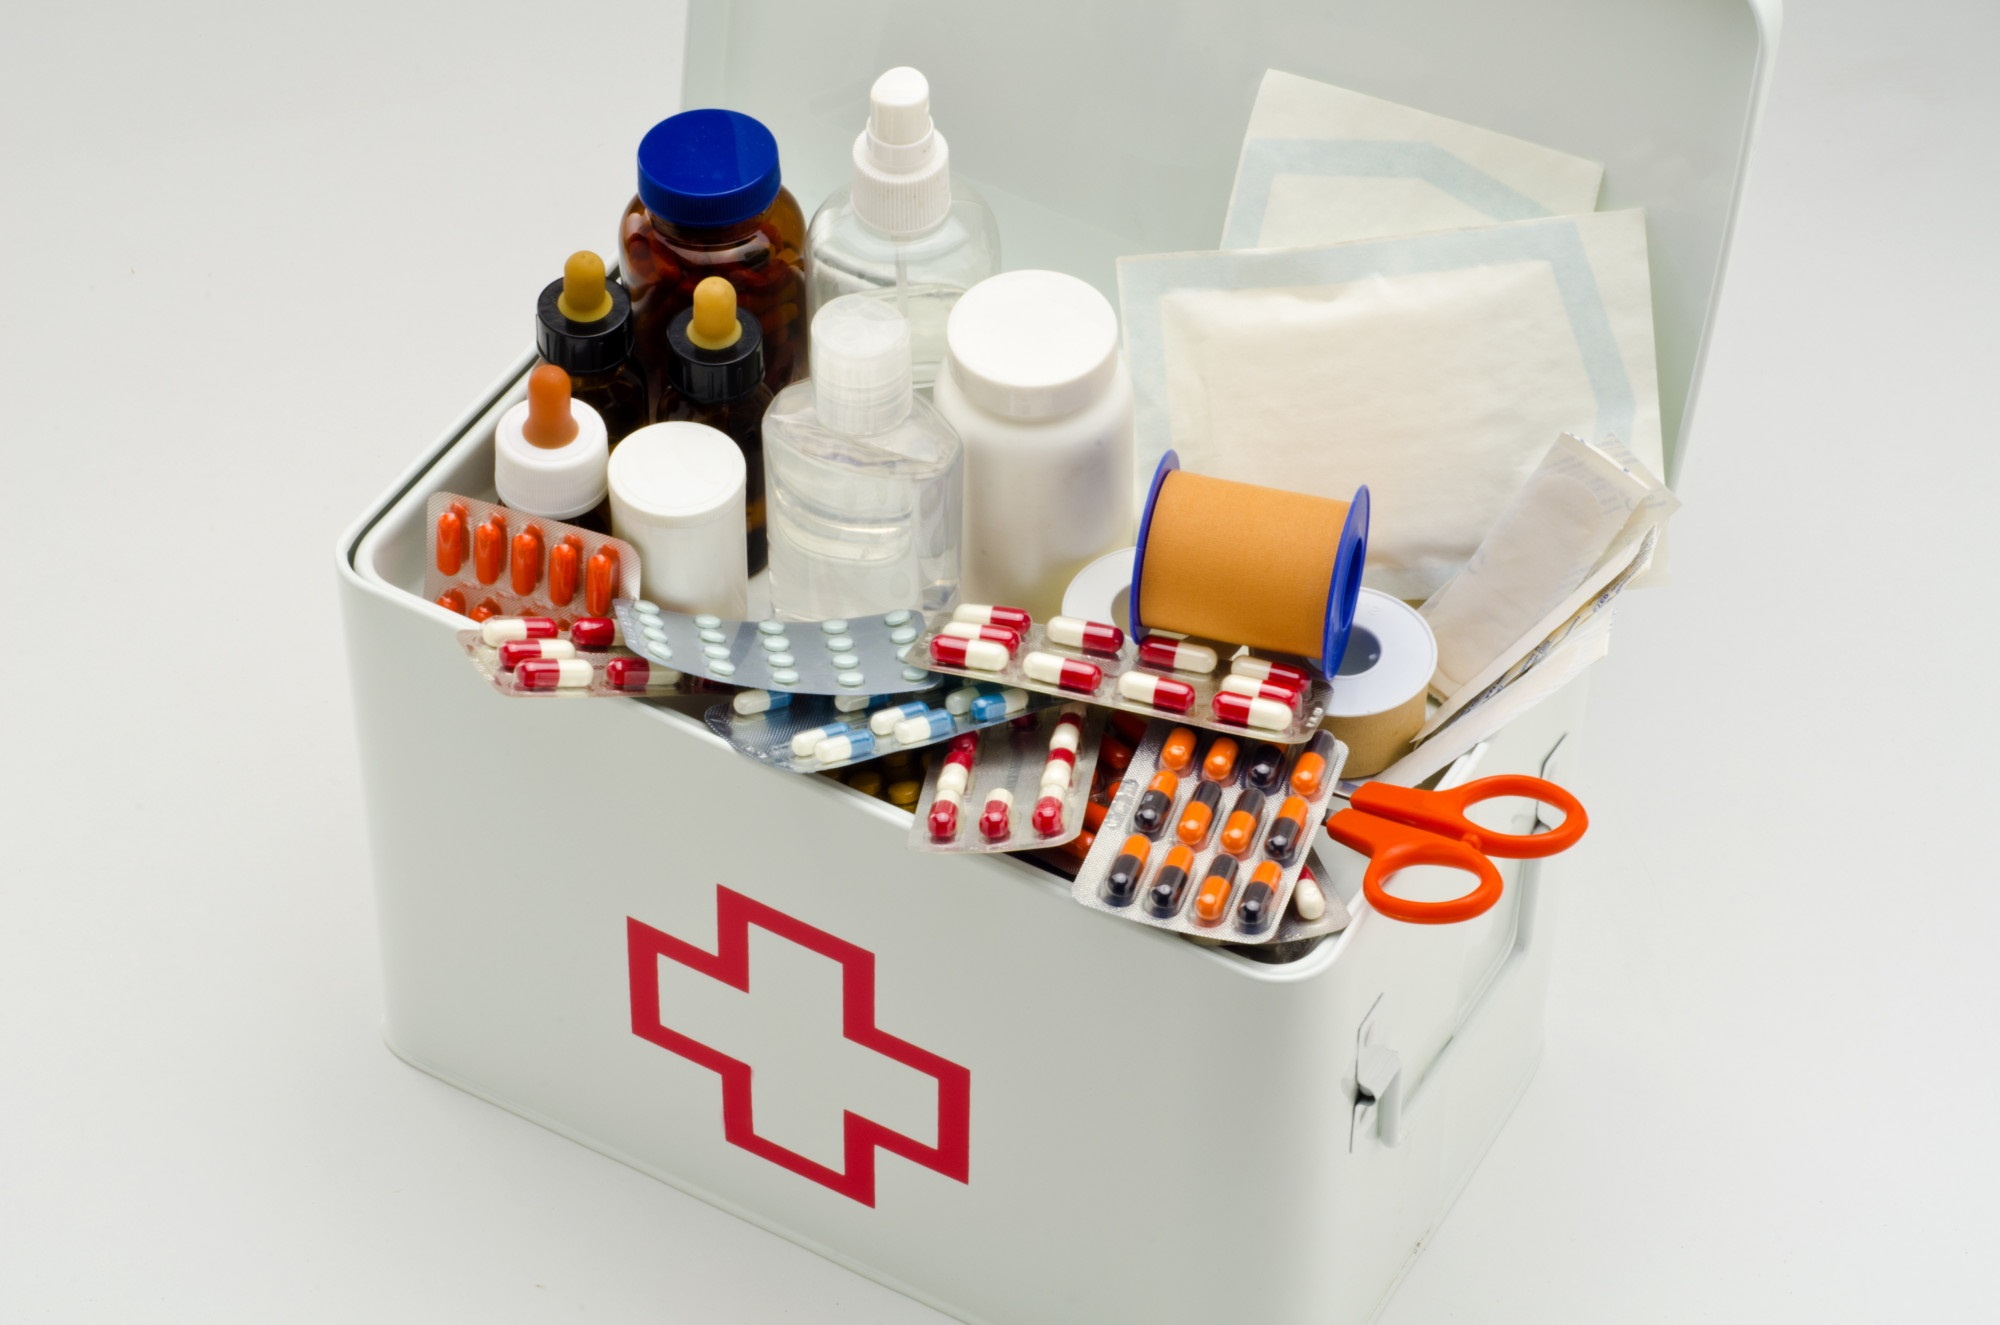 Open first aid box filled with medical supplies in white background